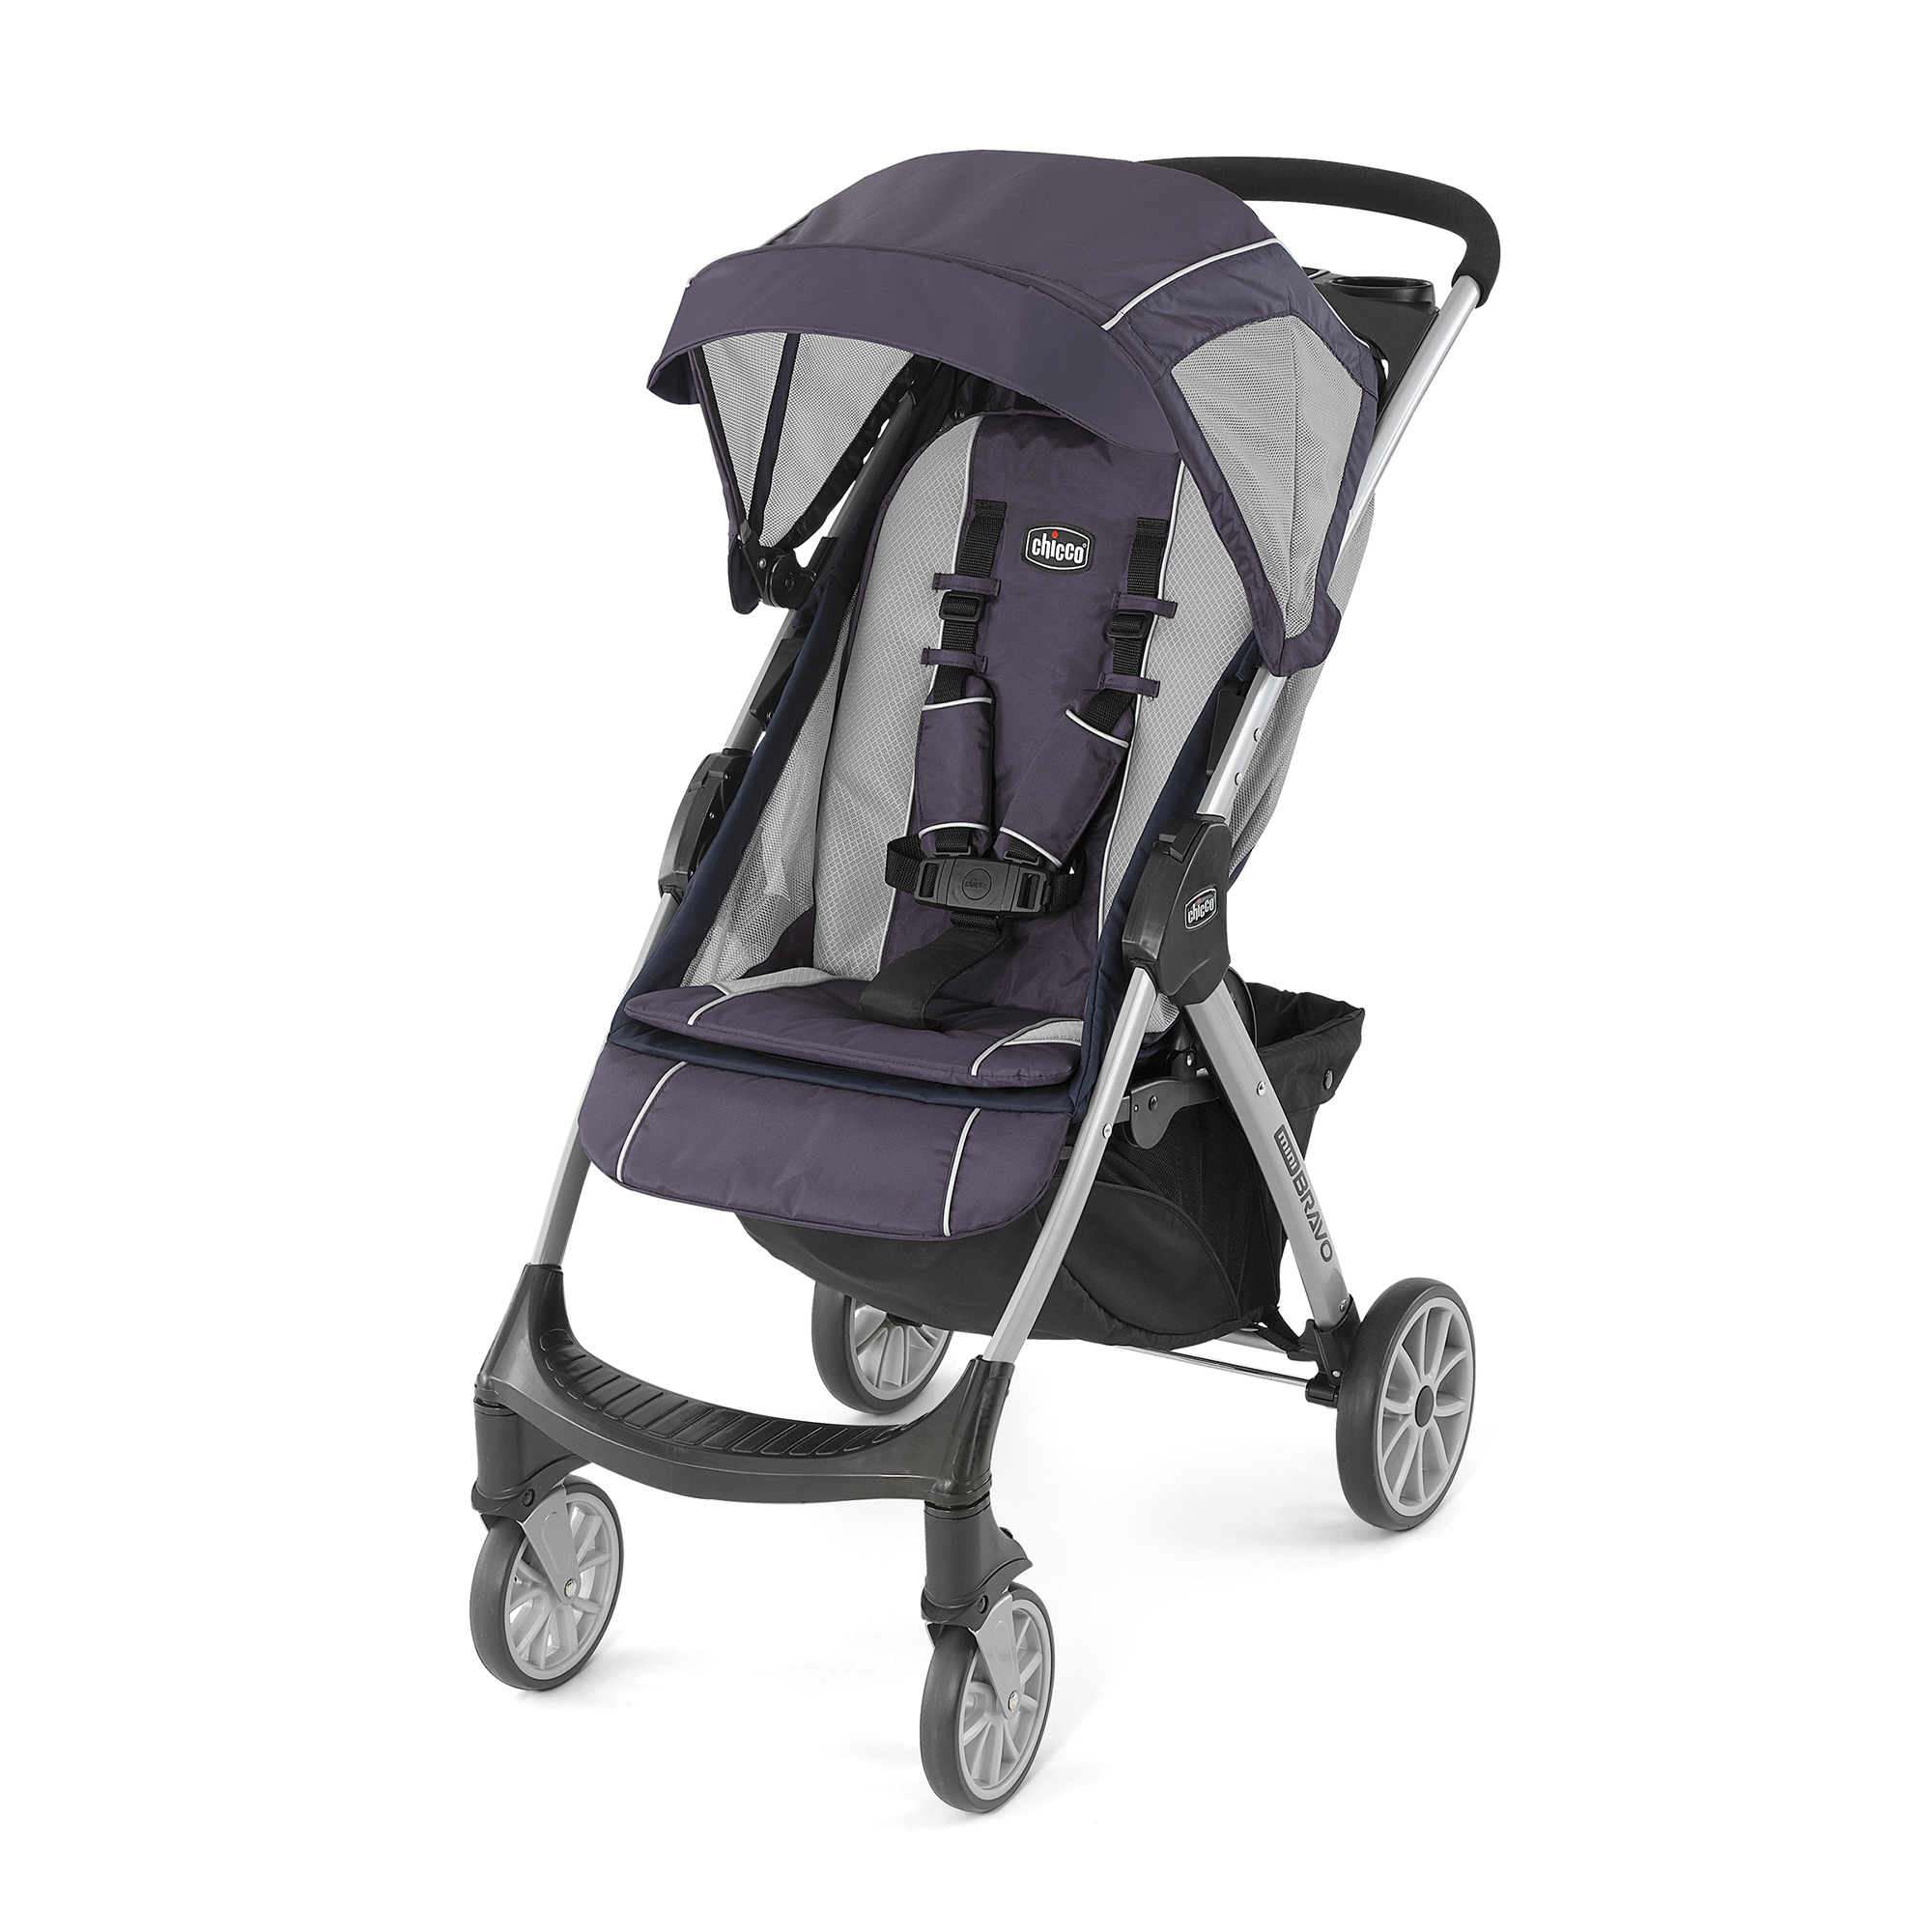 Chicco Mini Bravo Lightweight Stroller Mulberry by Chicco